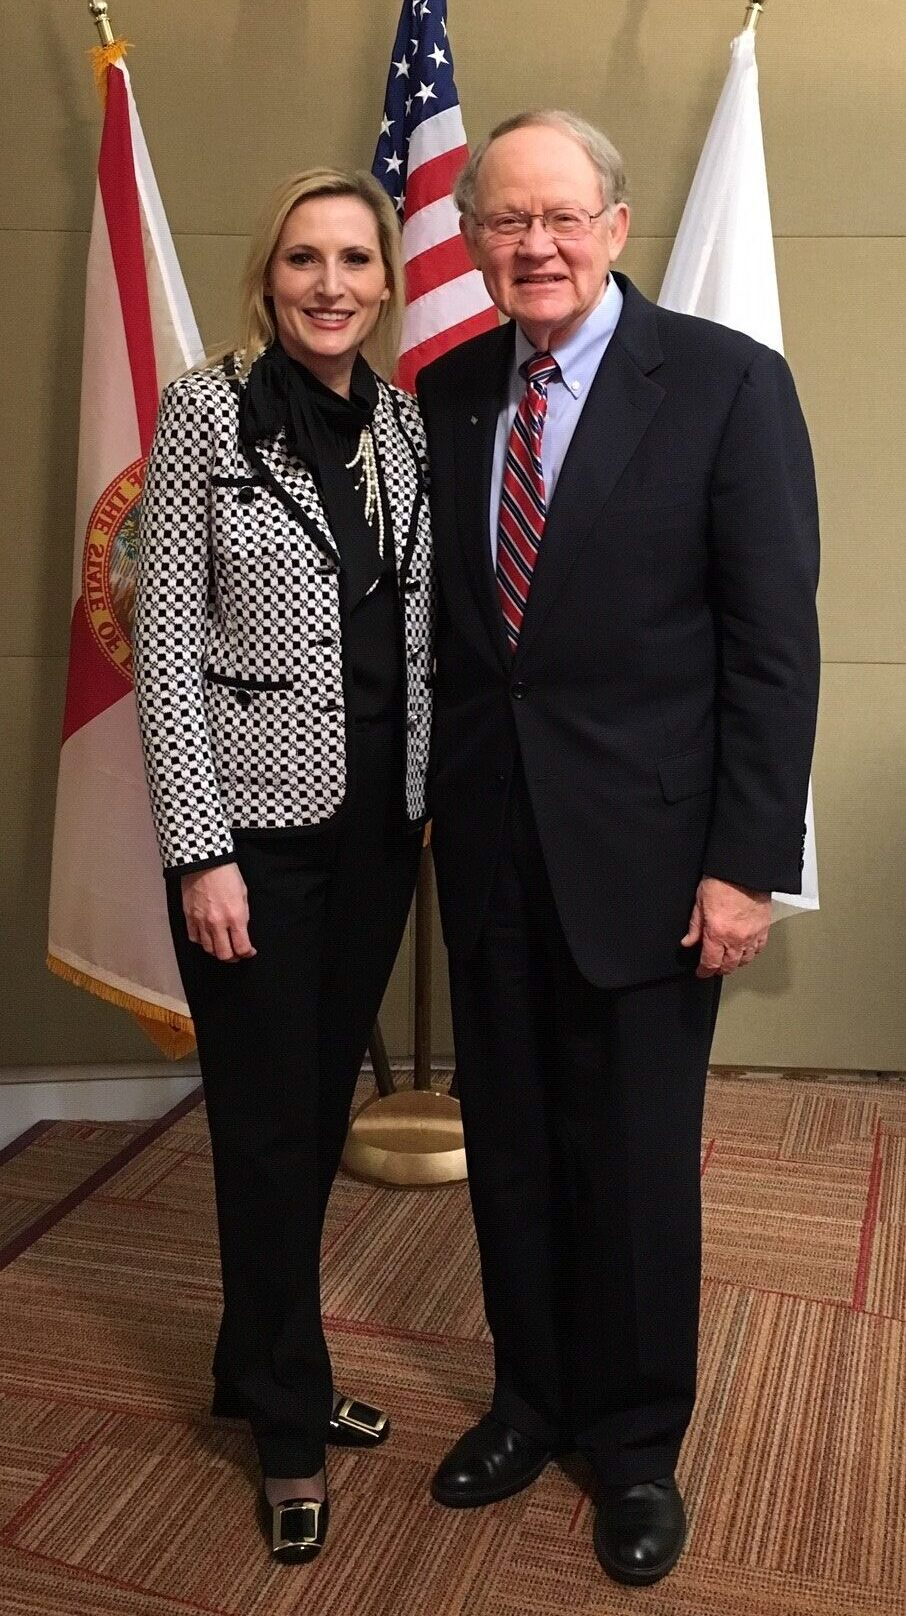 Cyber Florida Executive Director Mike McConnell standing with Florida Secretary of State Laurel Lee